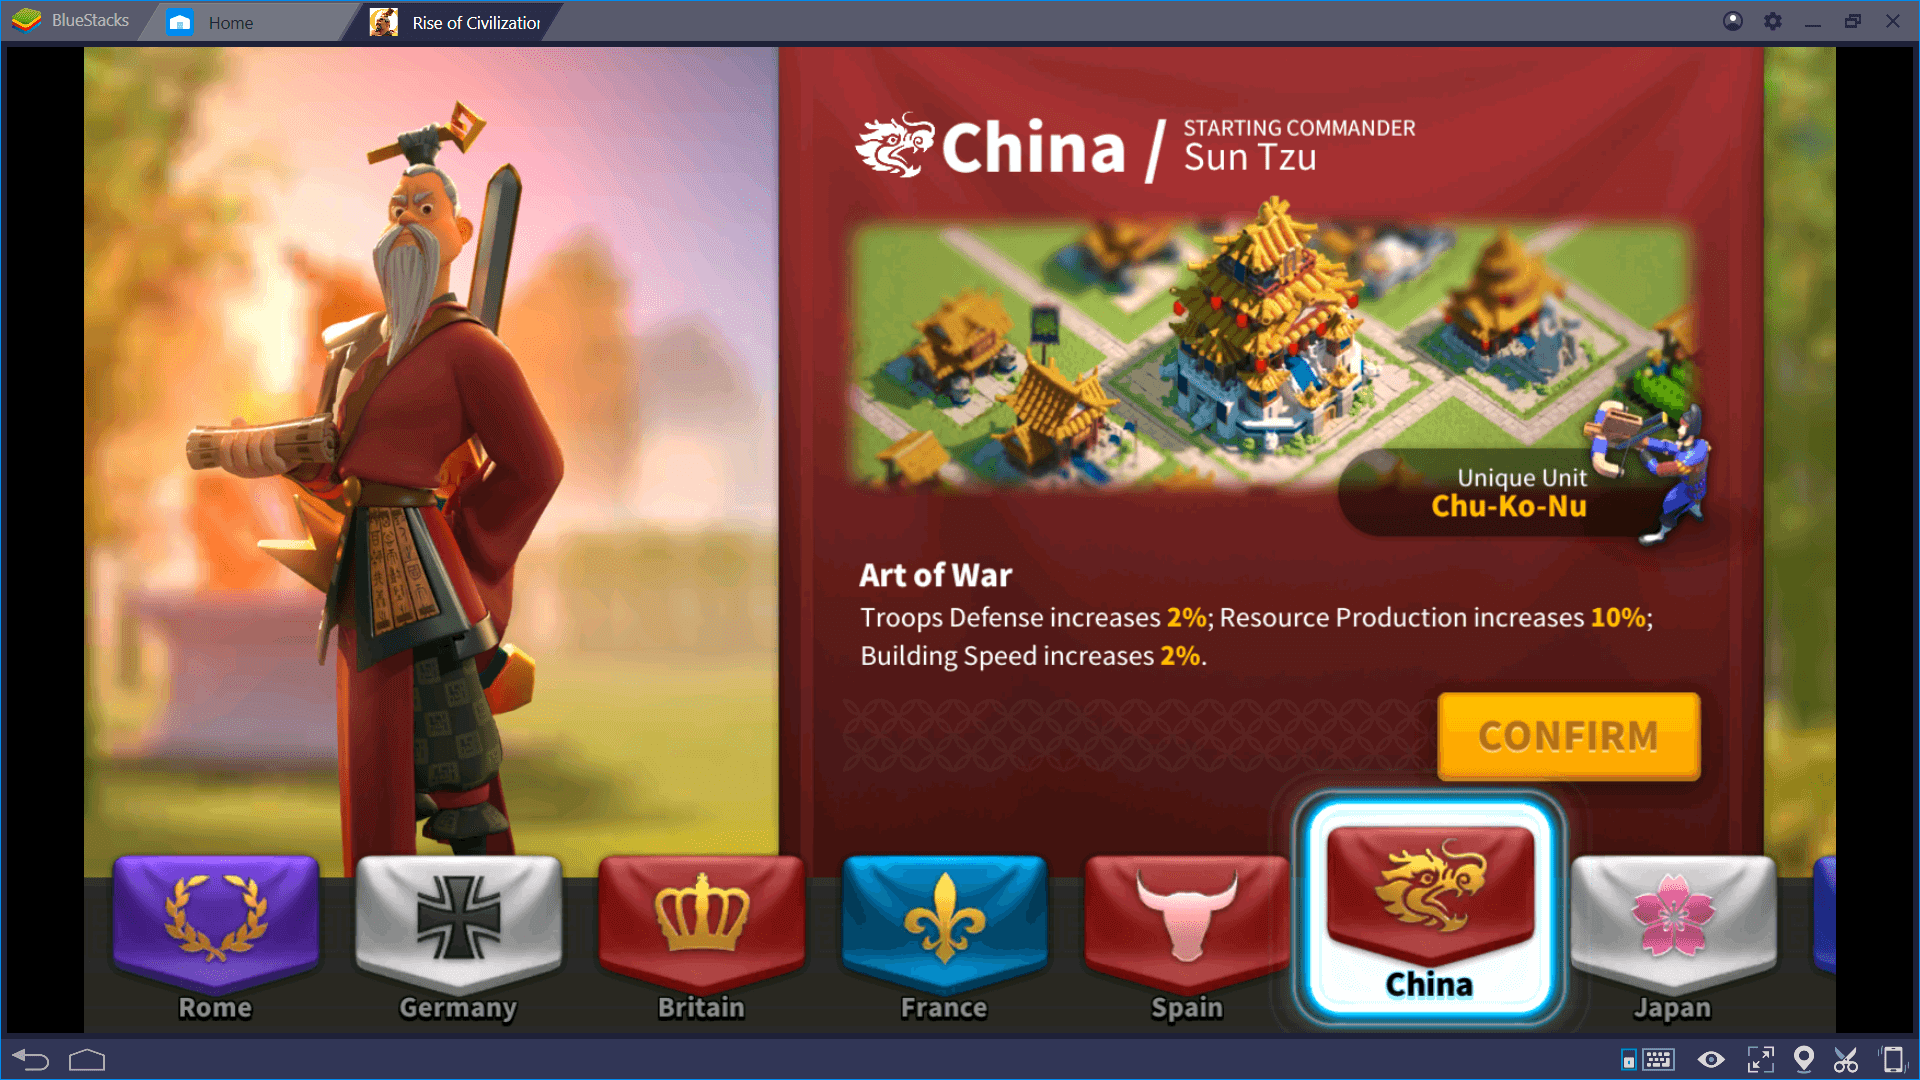 The Ultimate Guide to Choosing the Best Civilization in Rise of